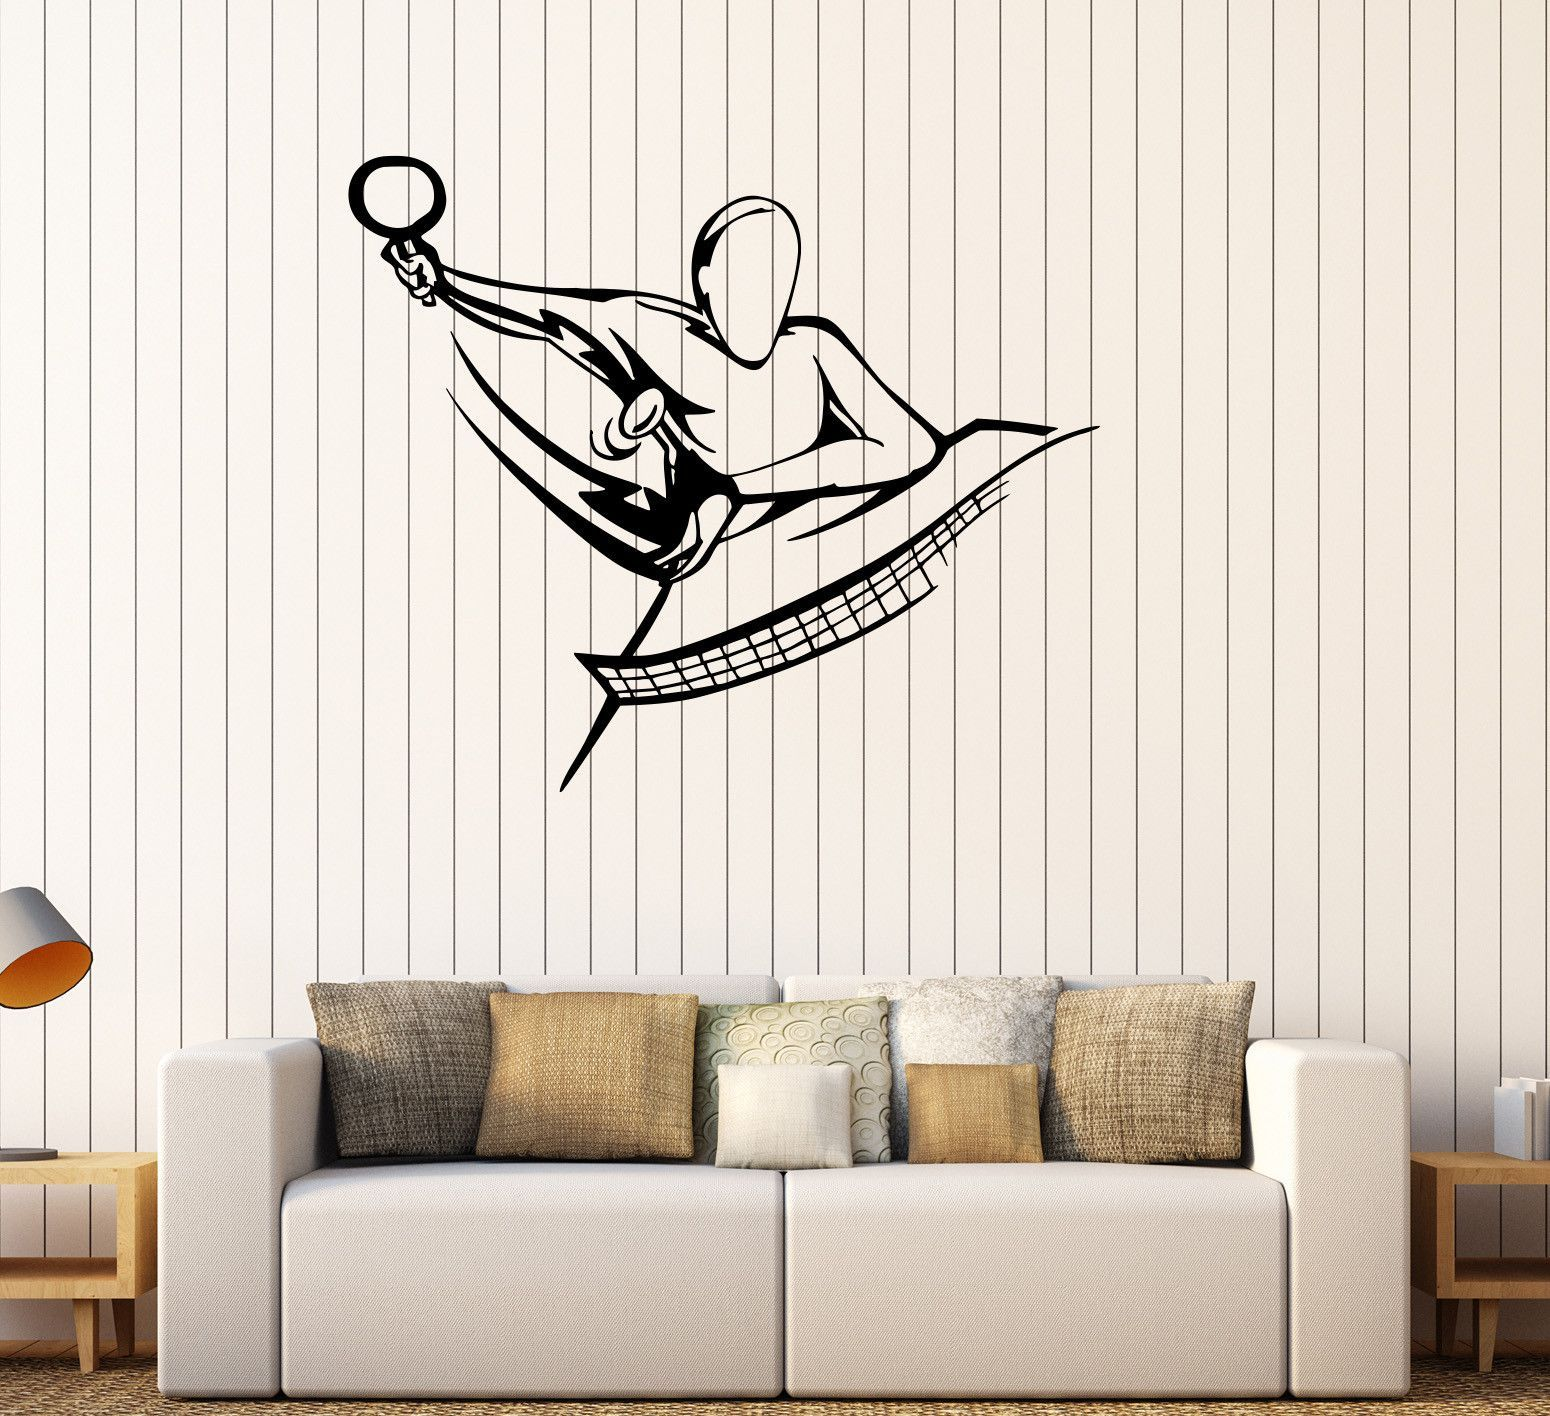 table tennis logo wall sticker sports ping pong vinyl decal home table tennis logo wall sticker sports ping pong vinyl decal home interior decoration waterproof high quality mural 11te by awesomezzdesigns on et